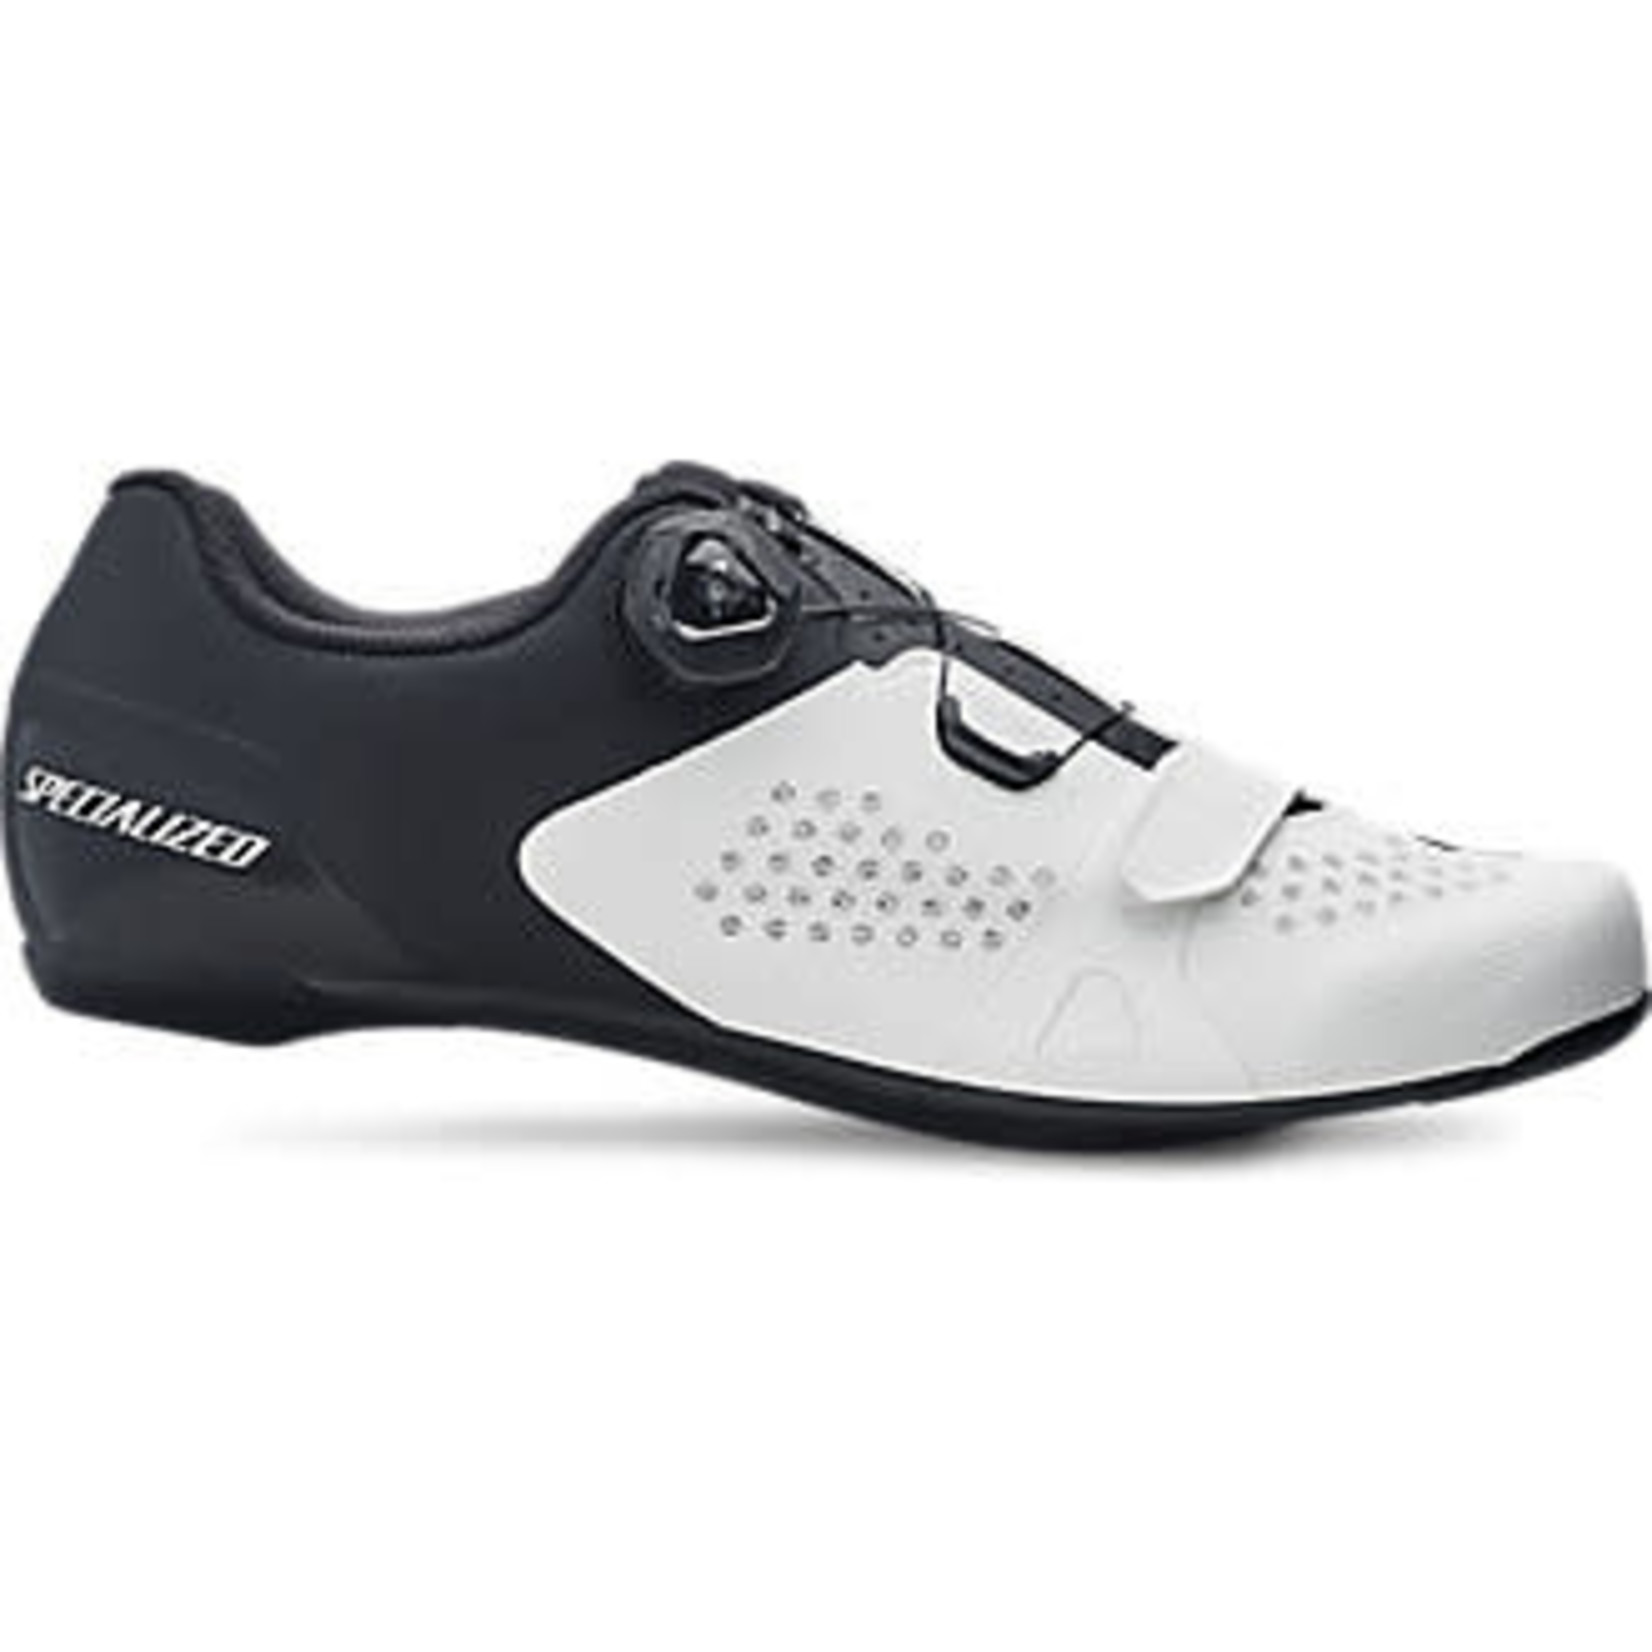 Specialized Specialized Torch 2.0 Shoes